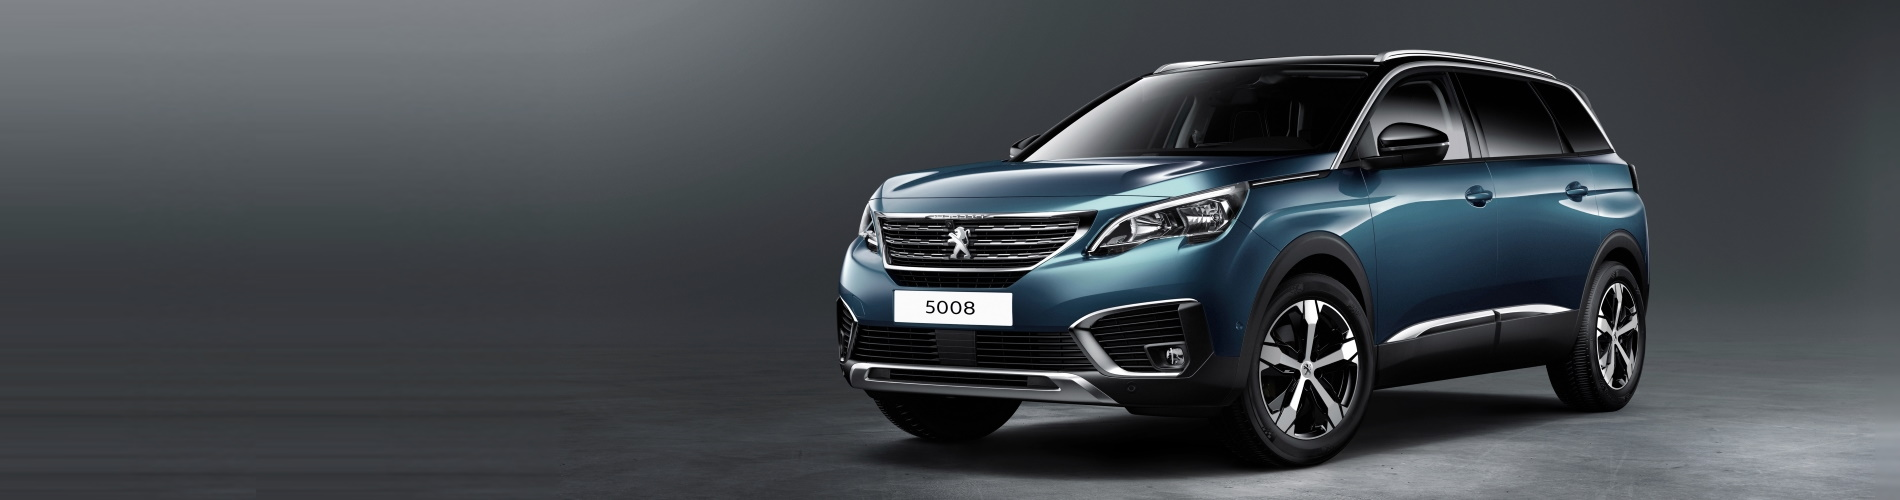 Peugeot 5008 SUV Wycliffe Peugeot Rugby